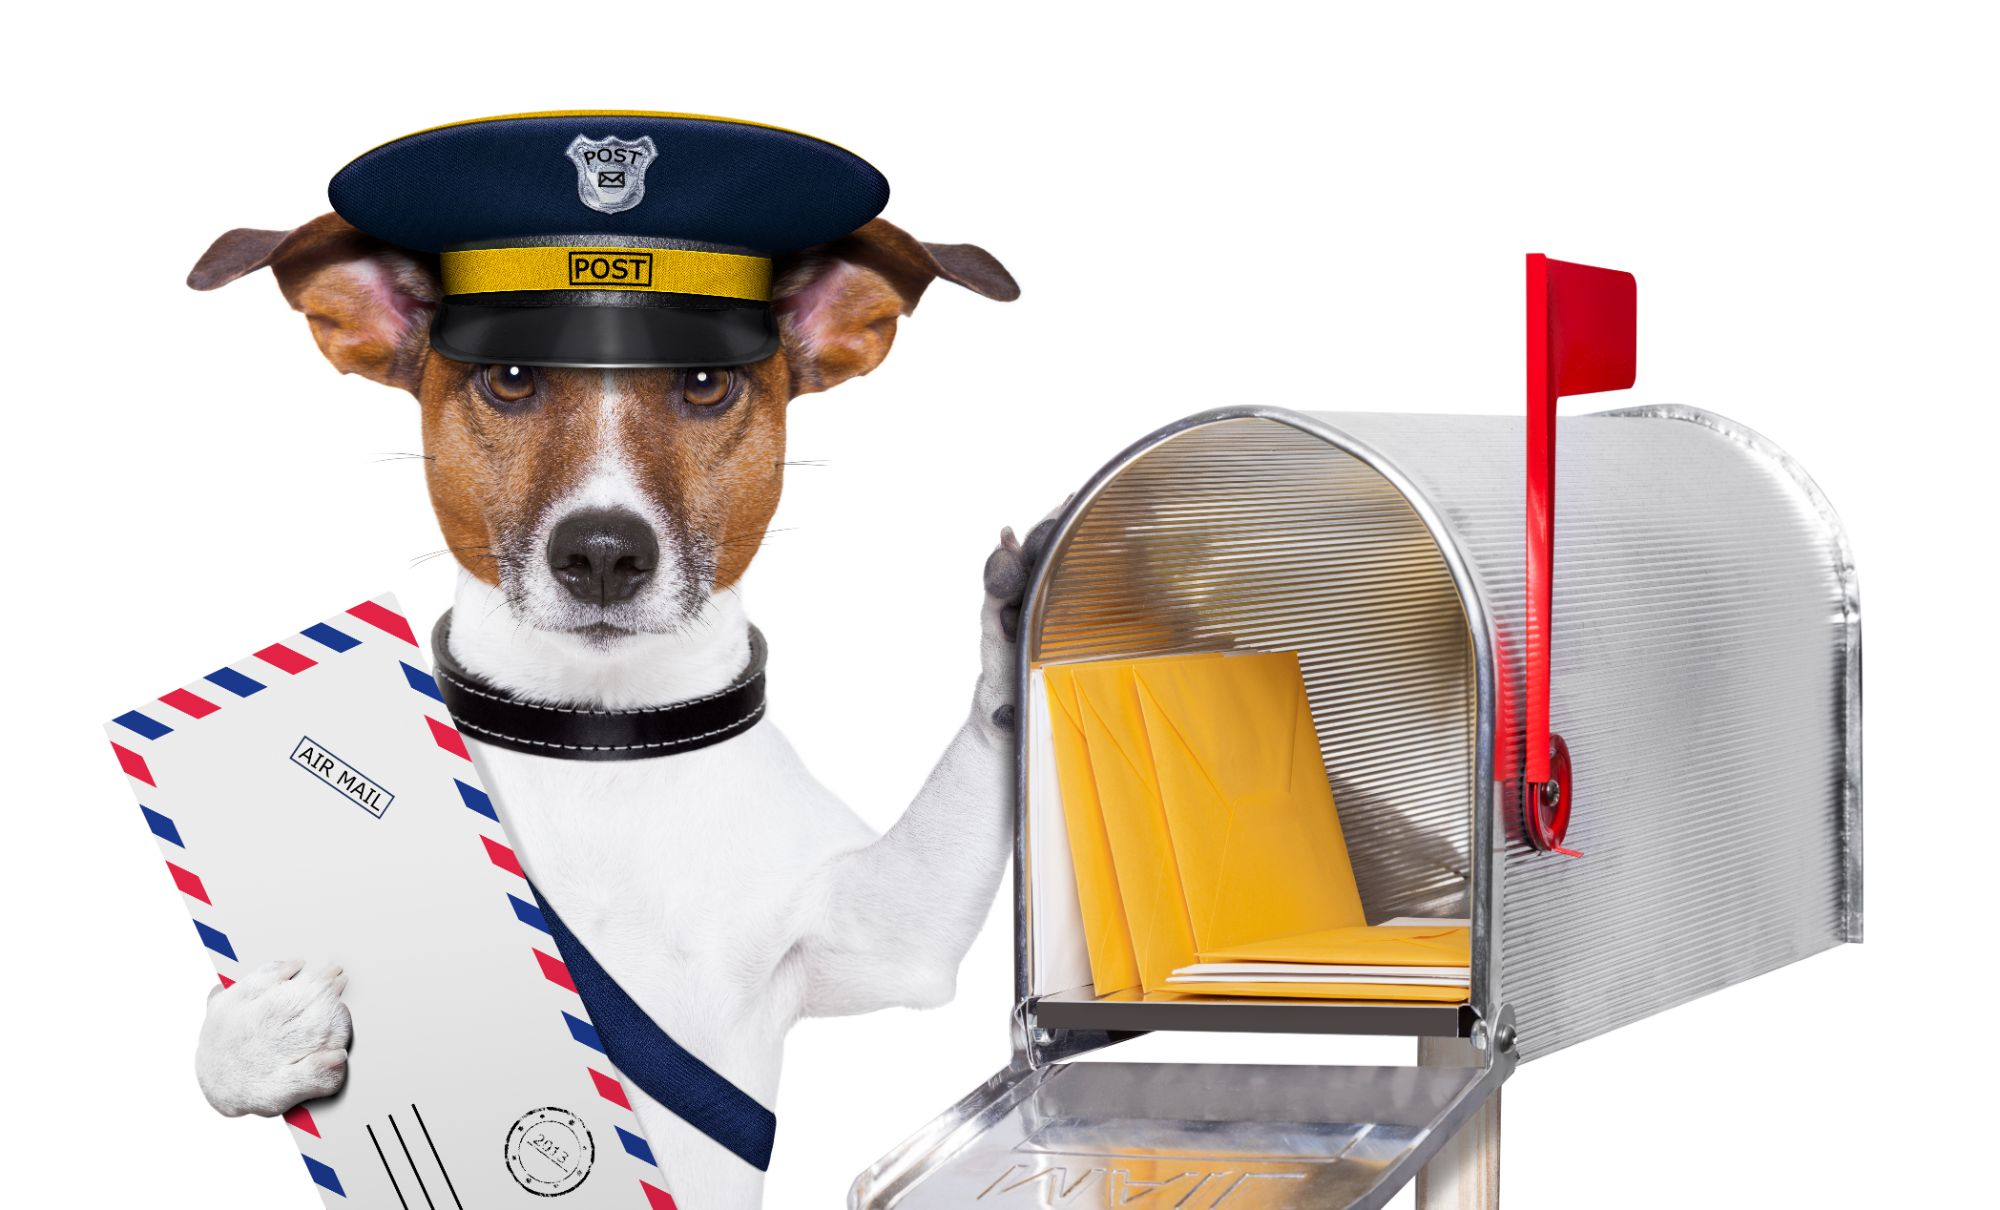 Dog at Mail Box With Mail